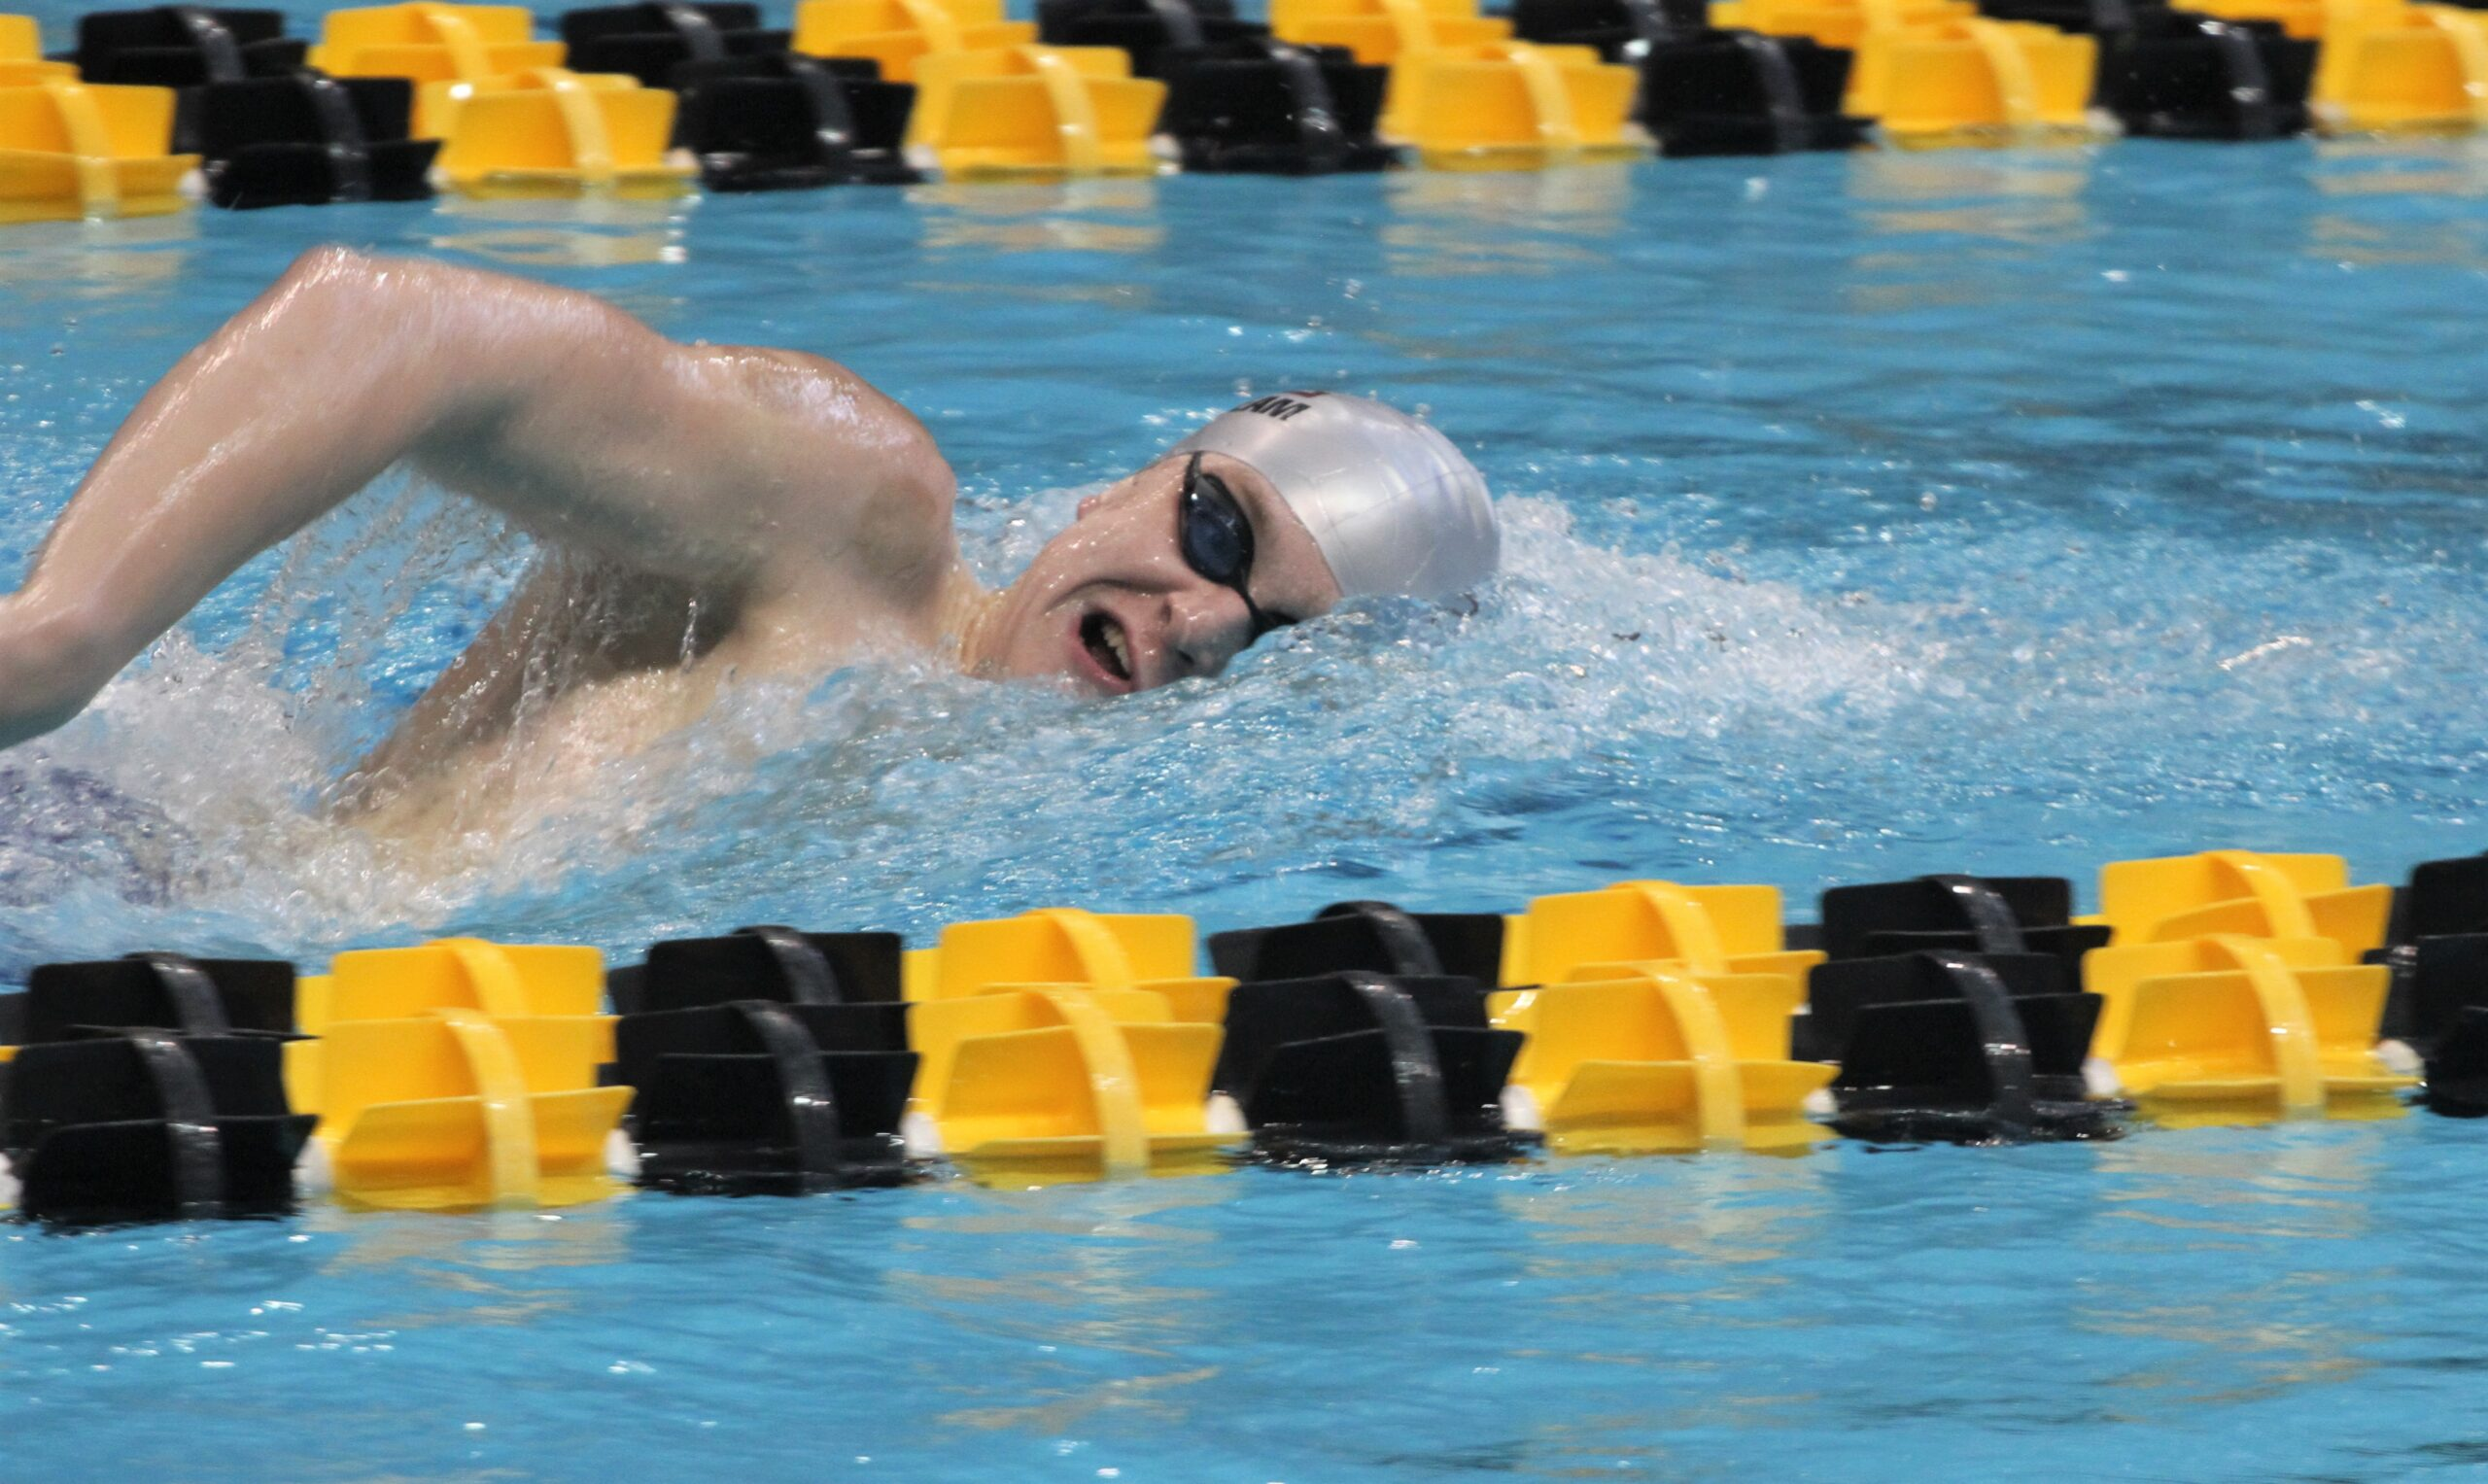 'There is a lot of work still to be done': Ankeny swimmers seek another crown